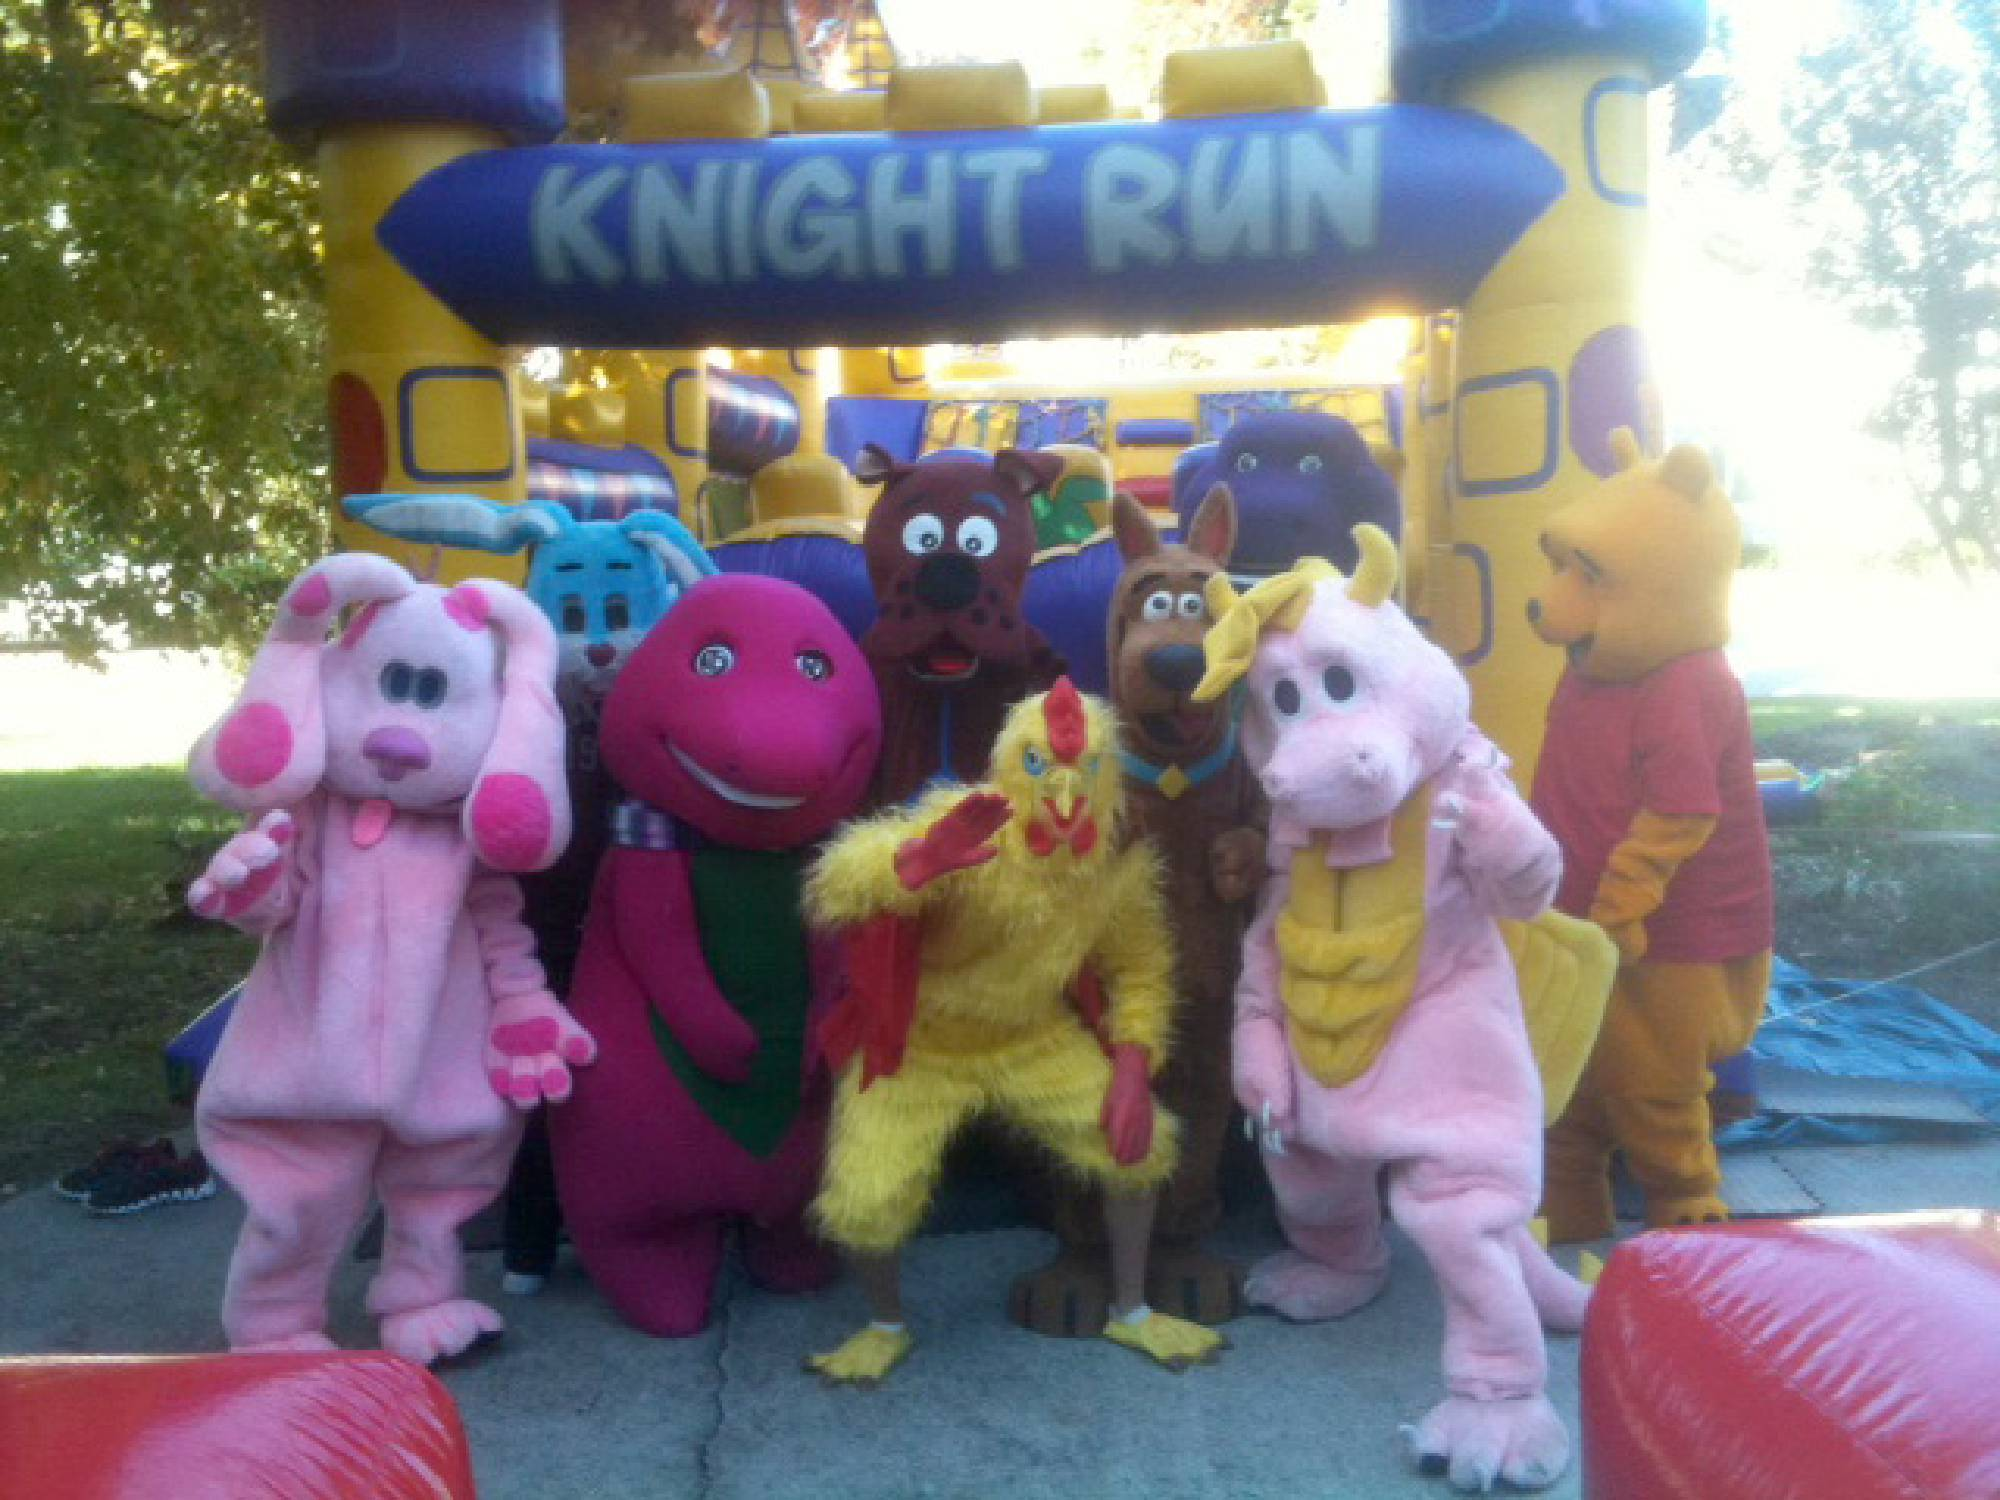 Costumed characters in front of obstacle course rental in Raleigh